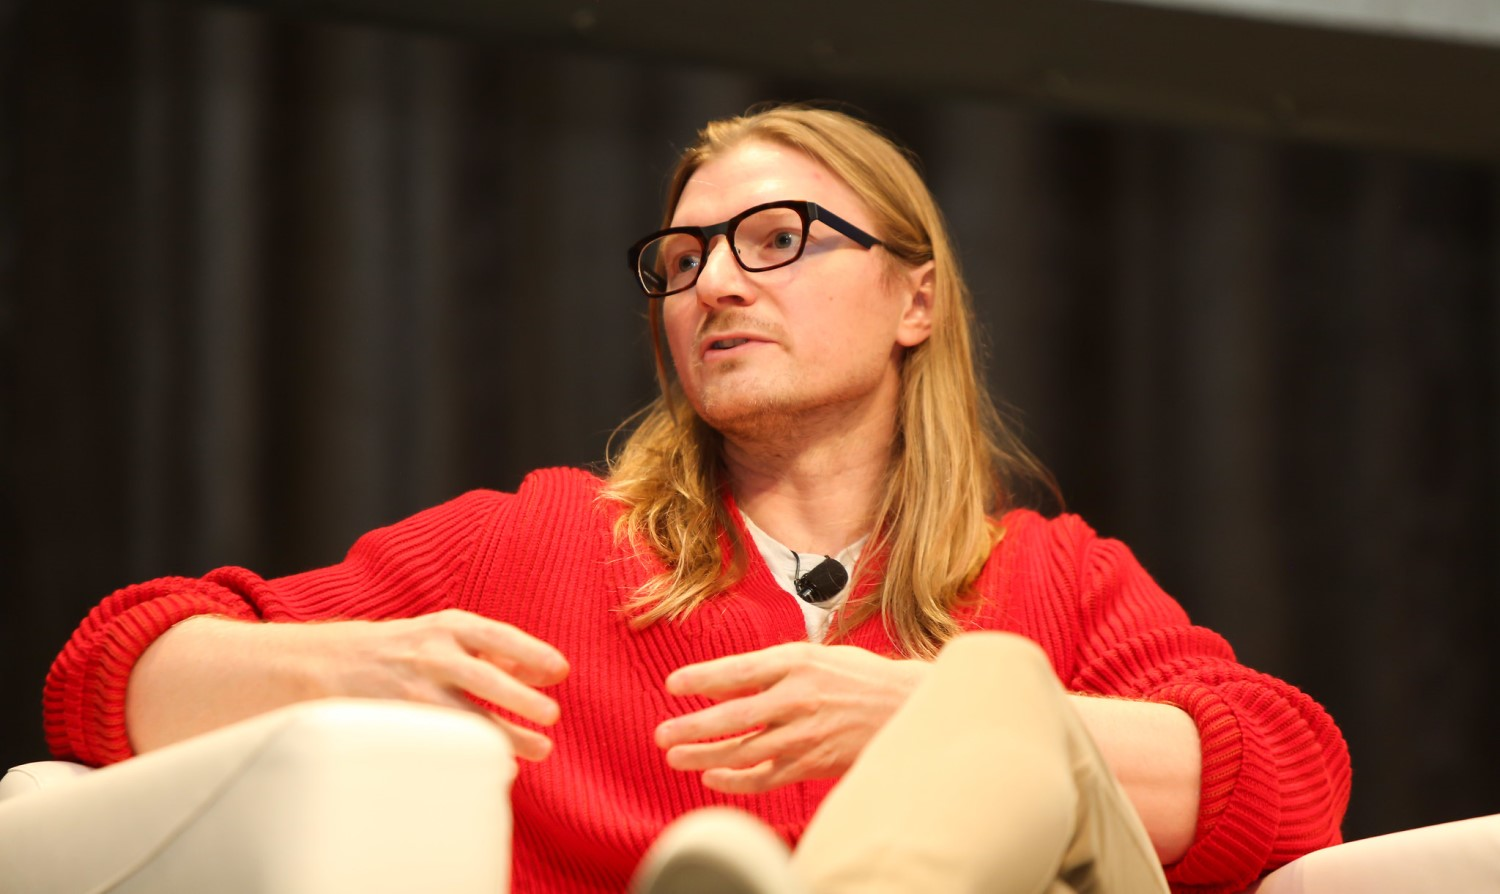 $1 Million per BTC in 10 Years: 'In Terms of Dollars Bitcoin Is Going to Infinity,' Says Kraken CEO